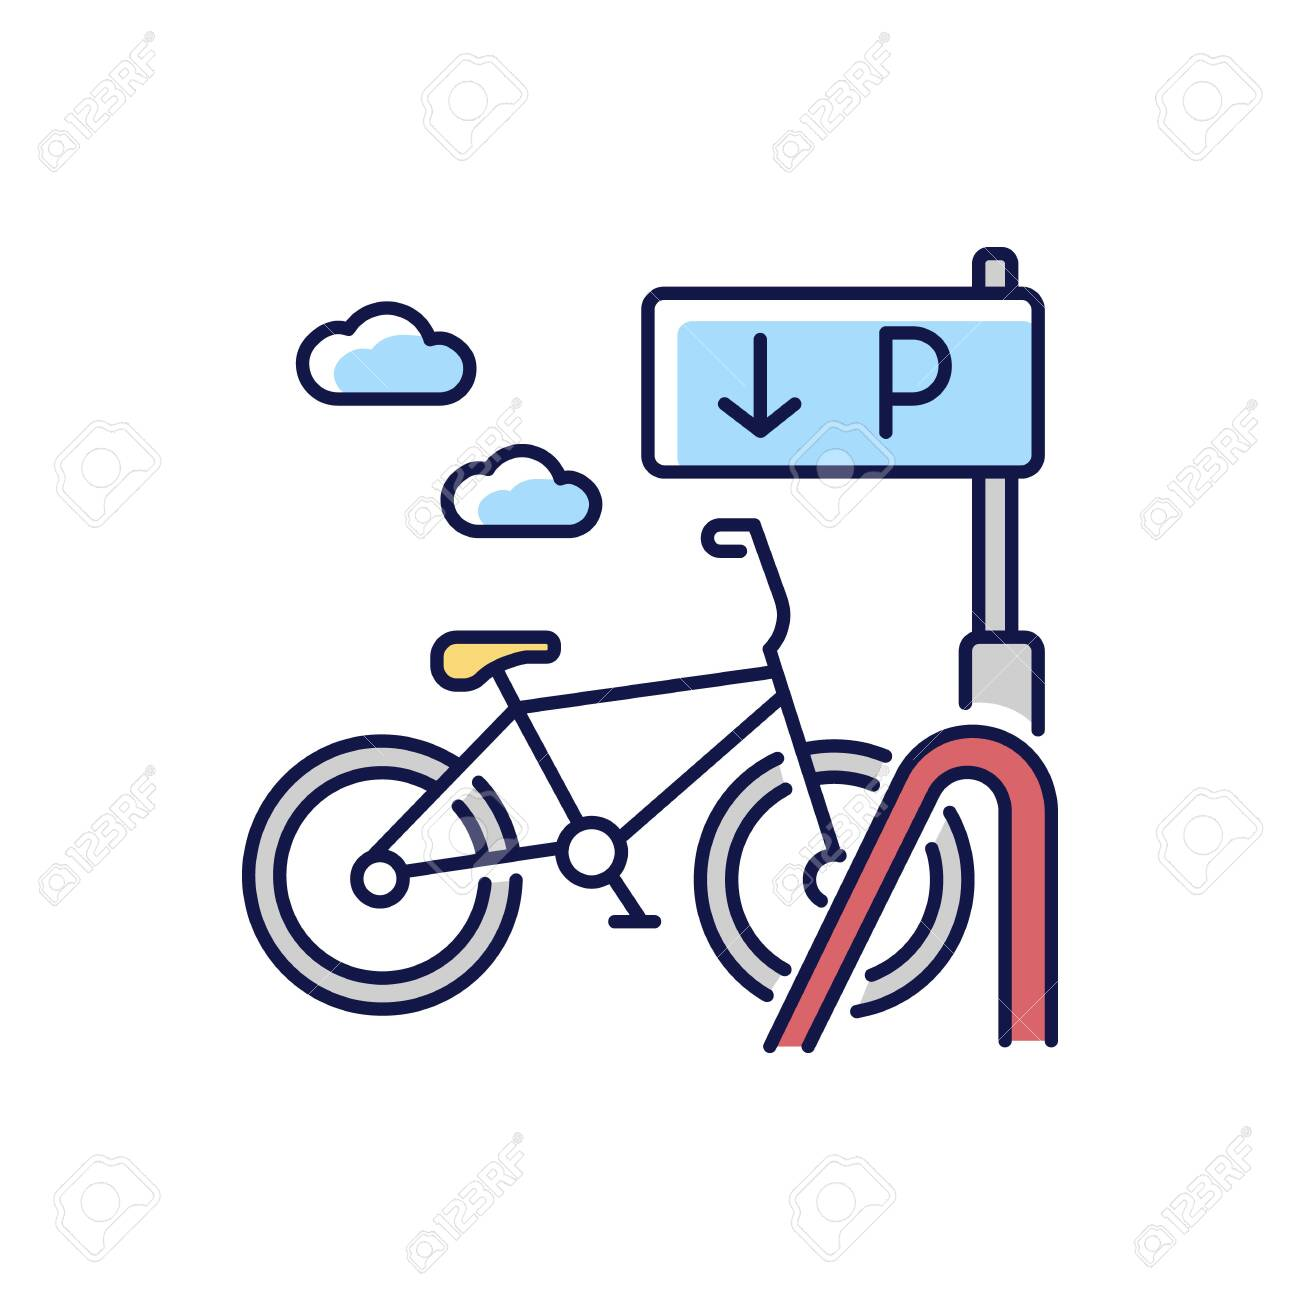 Bicycle parking rack RGB color icon. Ecological urban transportation. Corporate parking lot with road sign. Navigation pointer for bike. City transit means. Isolated vector illustration - 148170828